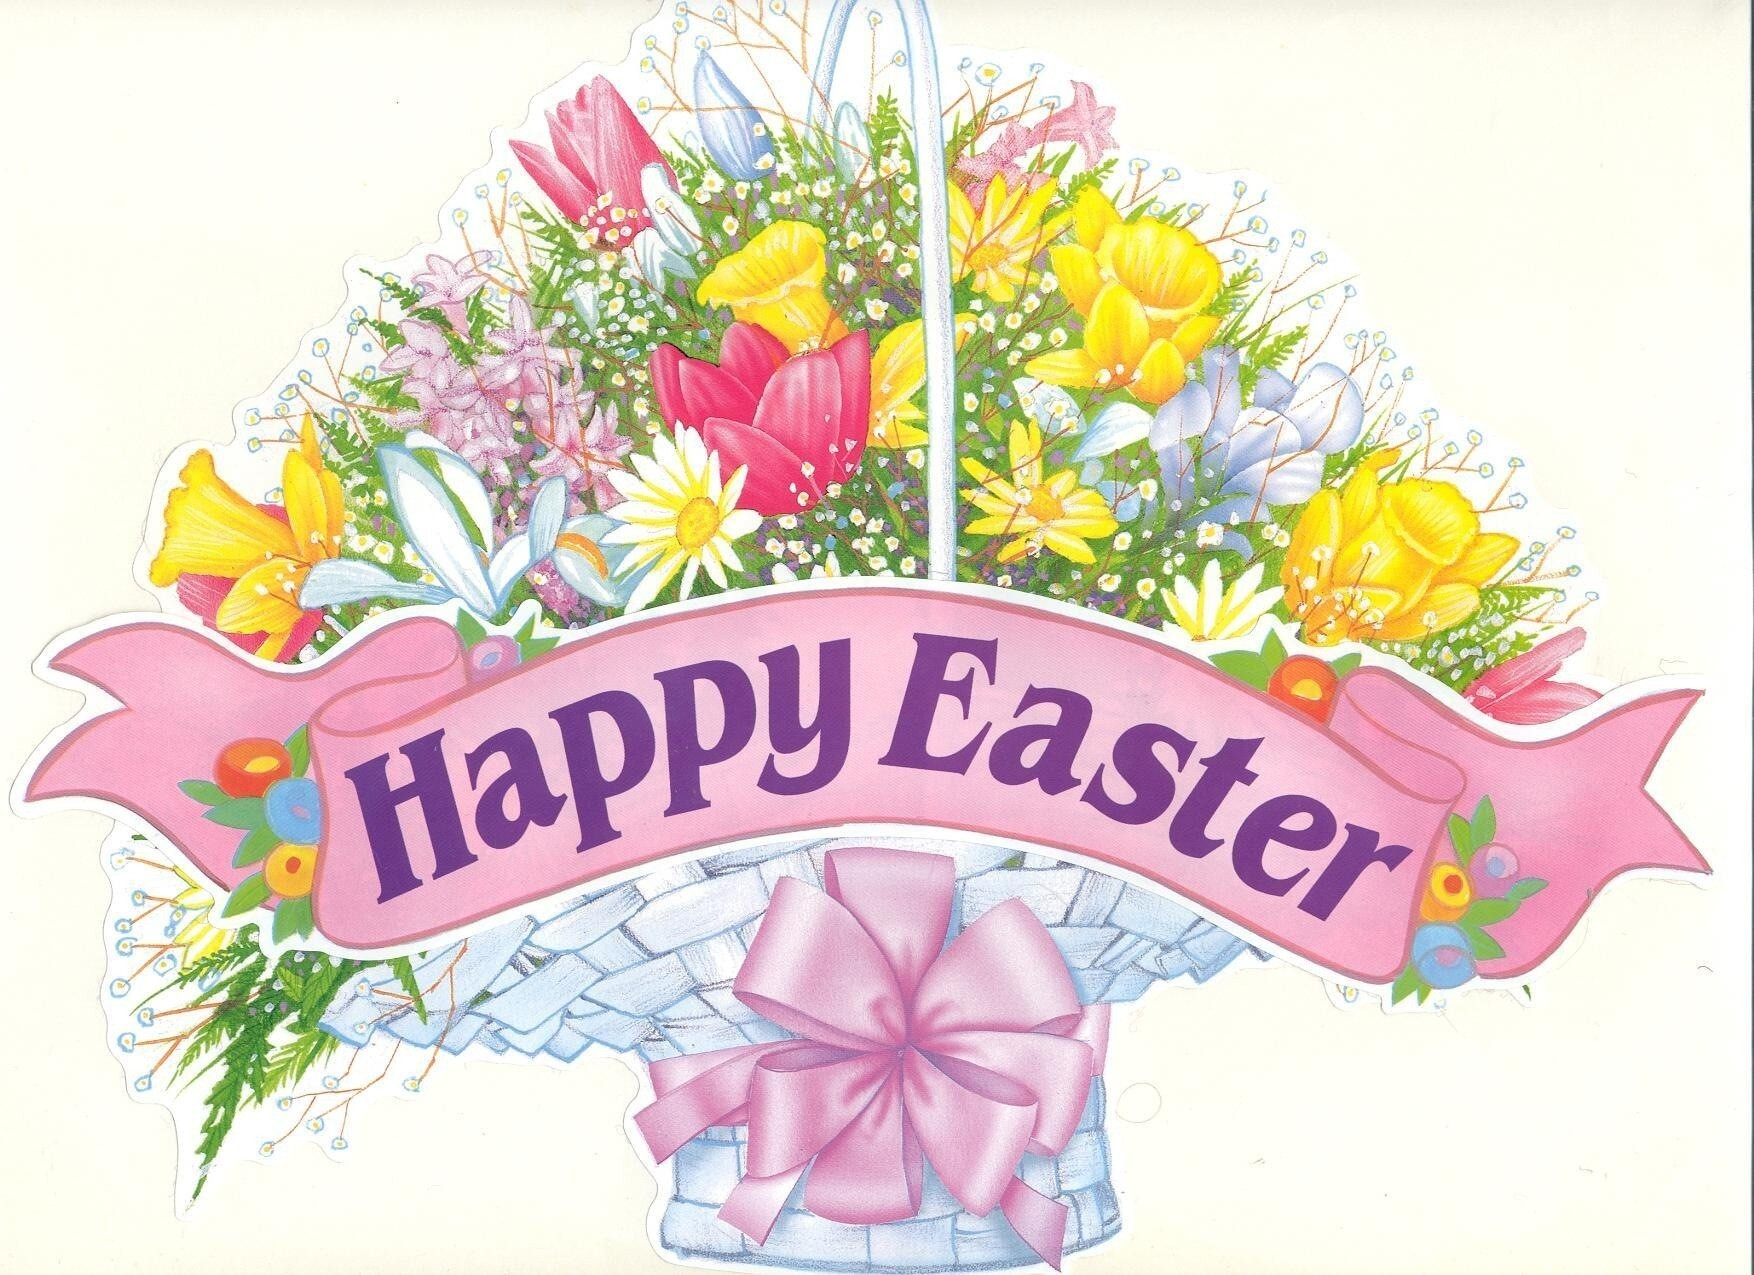 Happy easter flower poat hd wallpapers - Christian easter images free ...